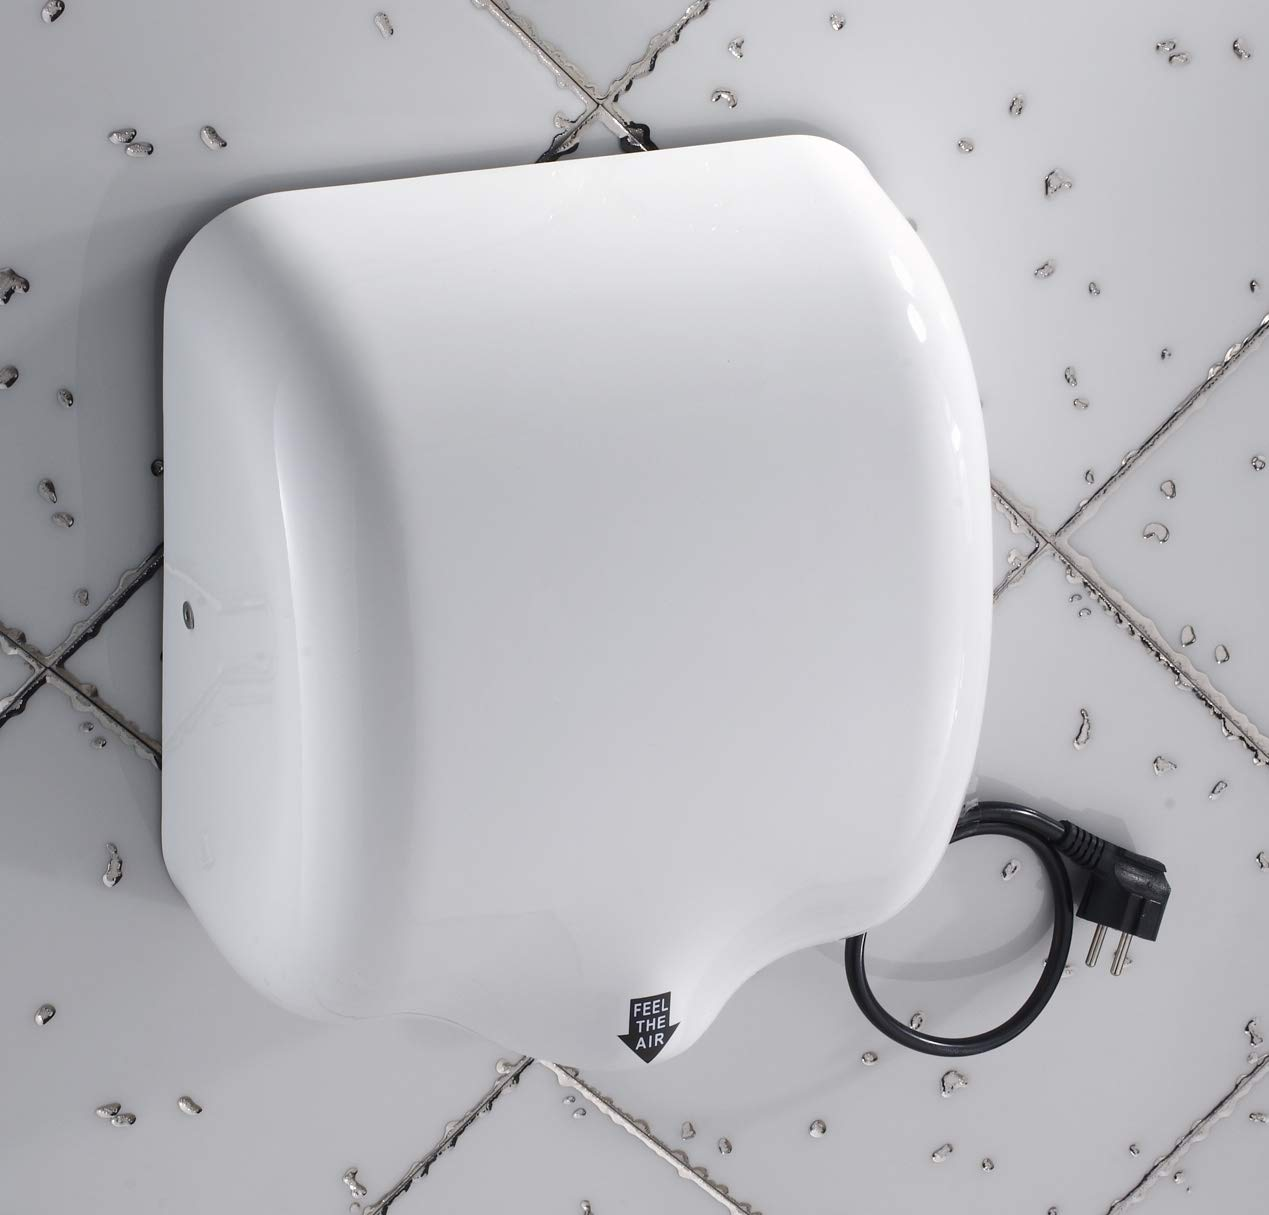 Mophorn 1800W Automatic Hand Dryer 110V Stainless Steel Commercial Hand Dryer Electric Hand Dryer for Hotel Home Bathrooms Air Hand Dryers White (White) by Mophorn (Image #3)